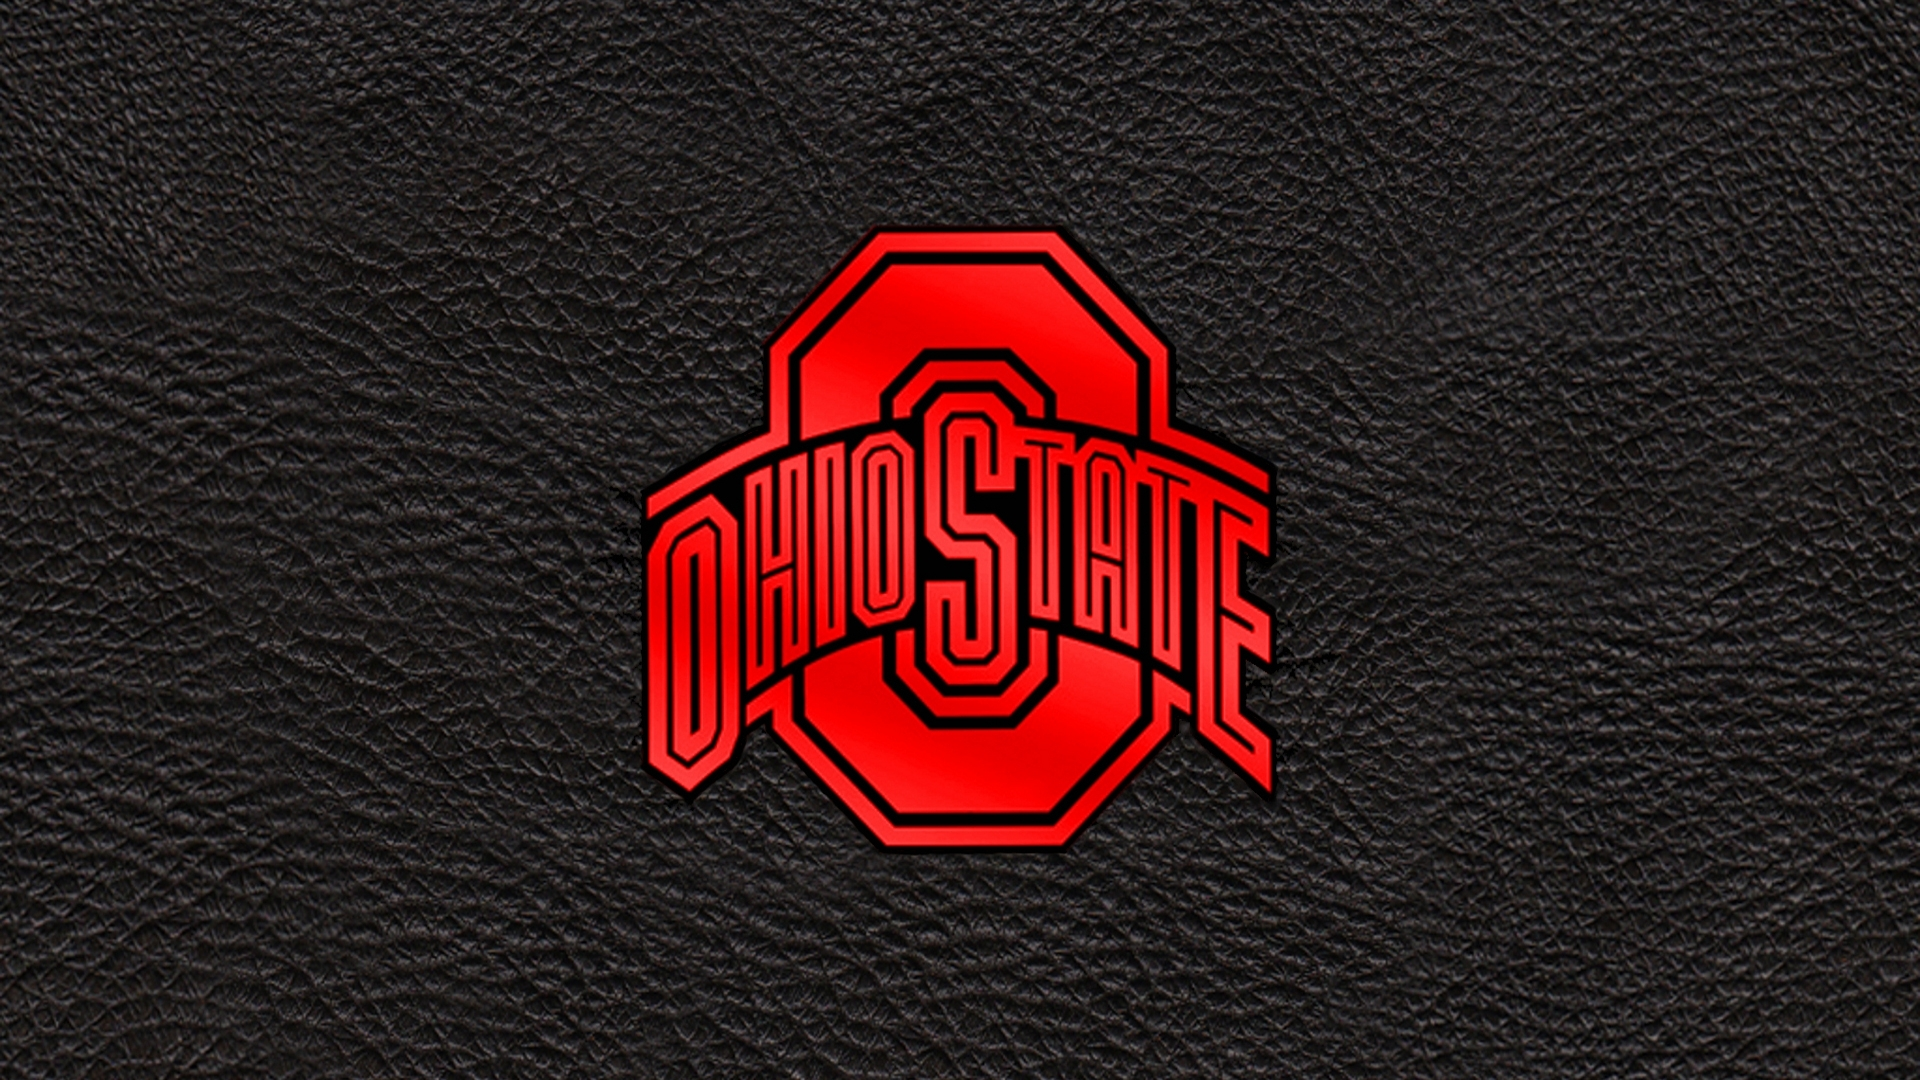 ohio state buckeyes football backgrounds download | pixelstalk